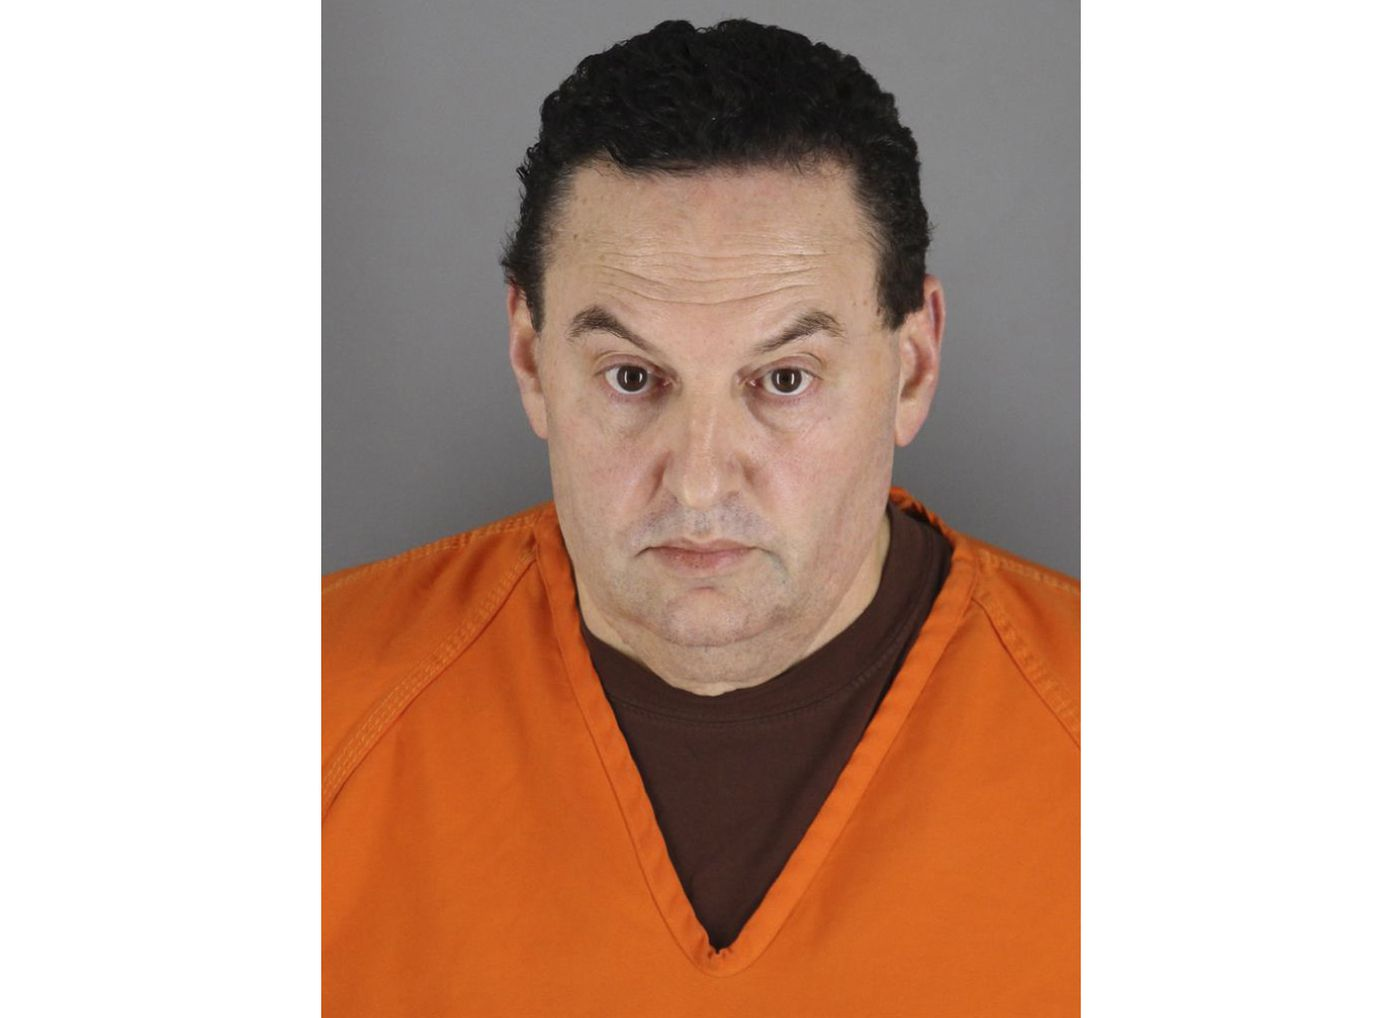 Man's discarded napkin, genealogy site leads to arrest in 1993 stabbing death